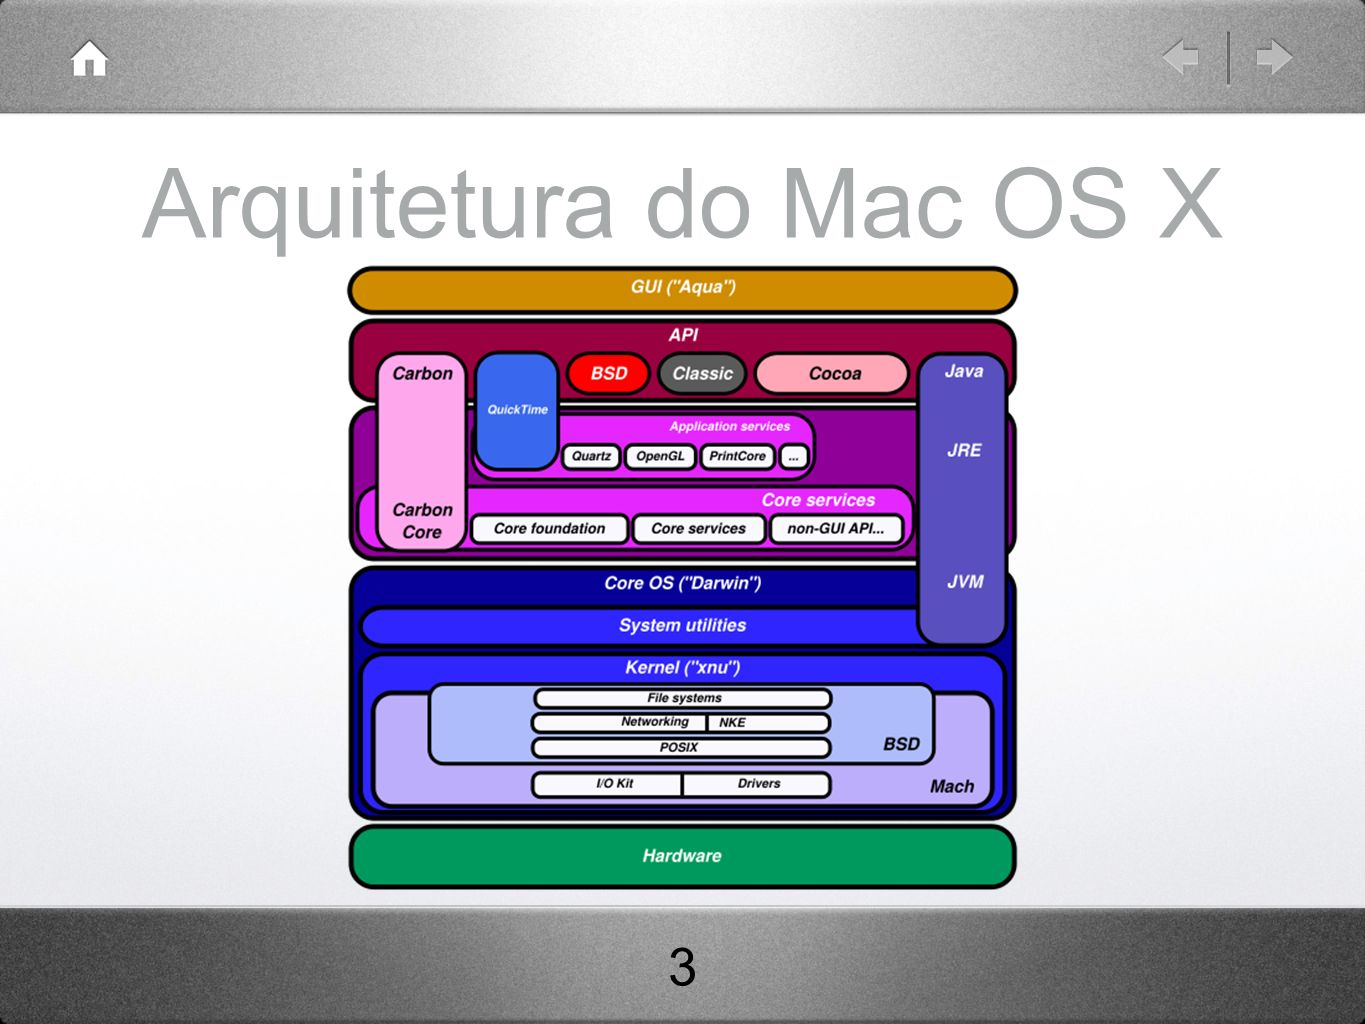 Arquitetura do Mac OS X 3